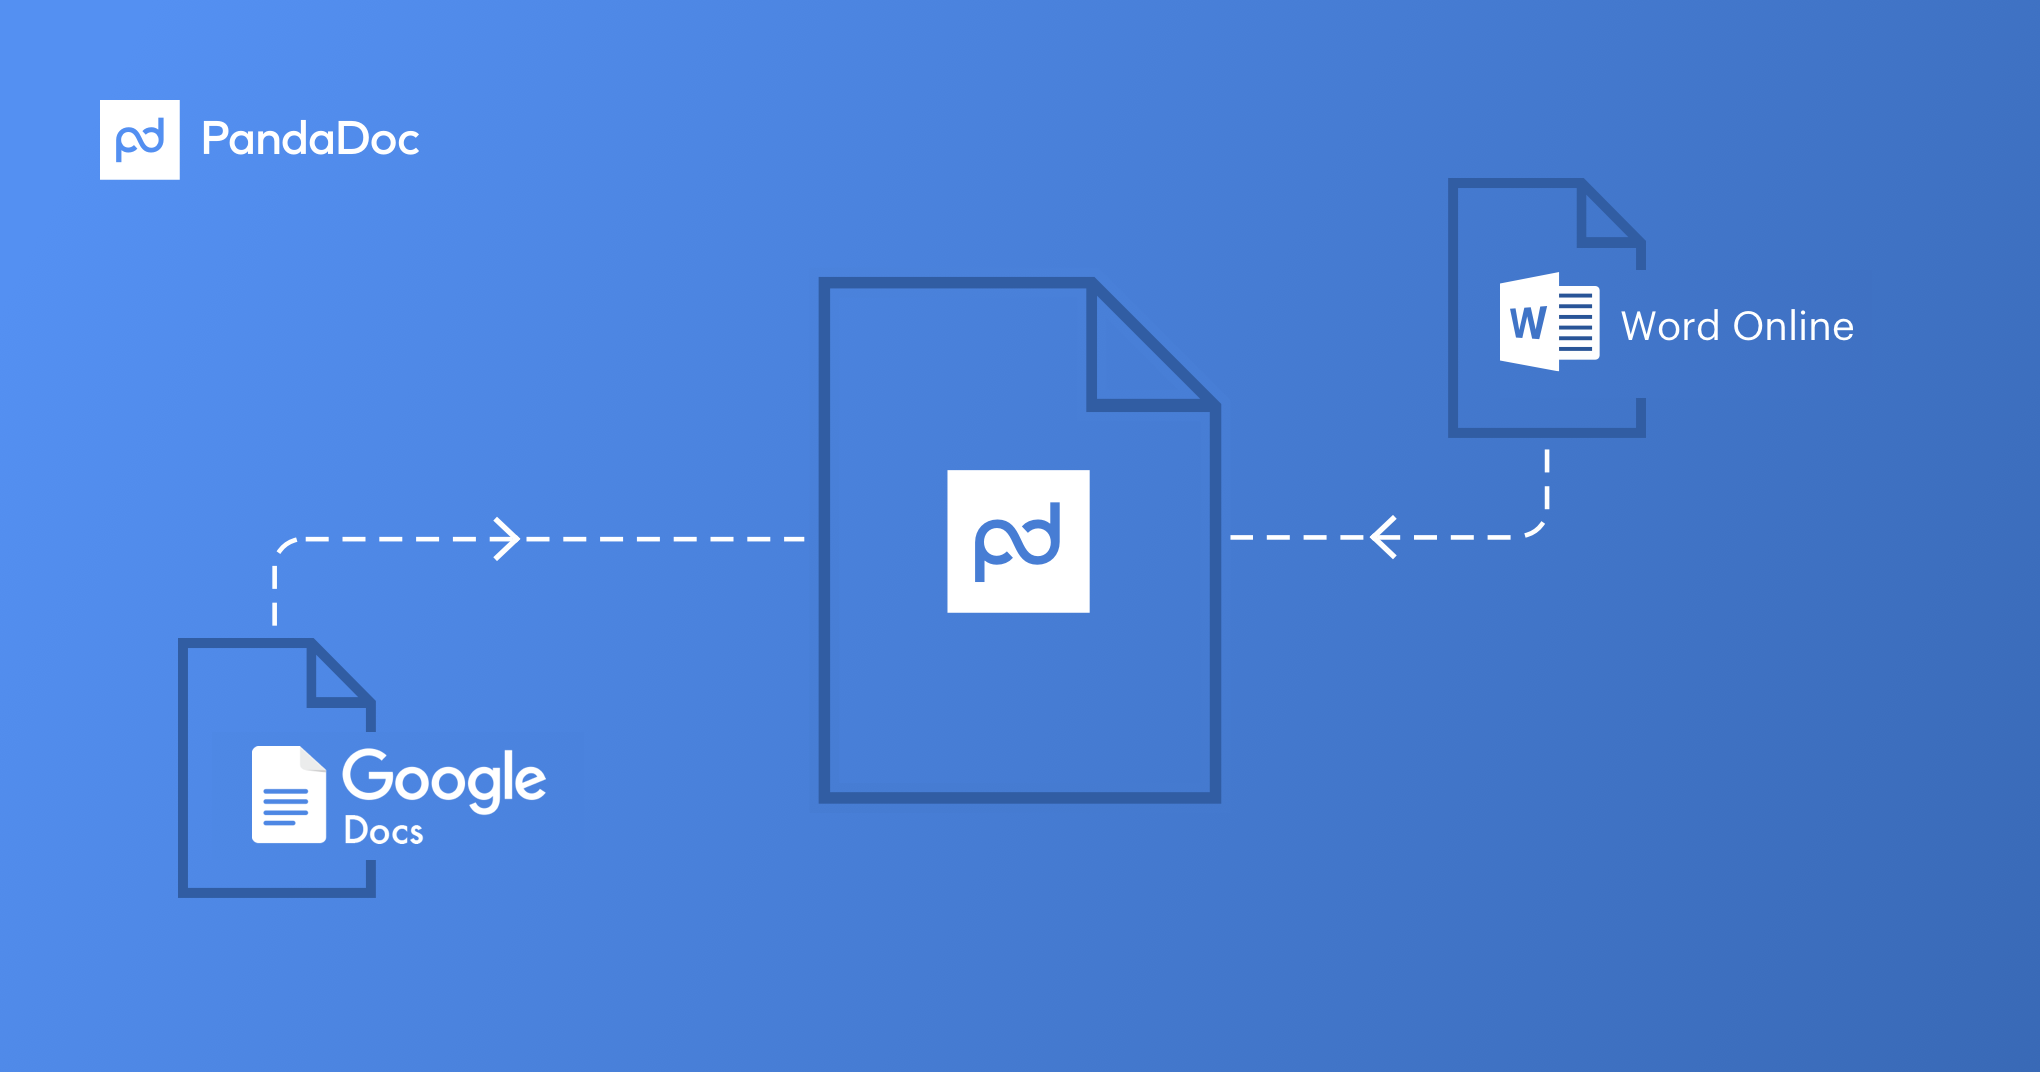 July updates: Create editable documents from Google Docs or Word 365